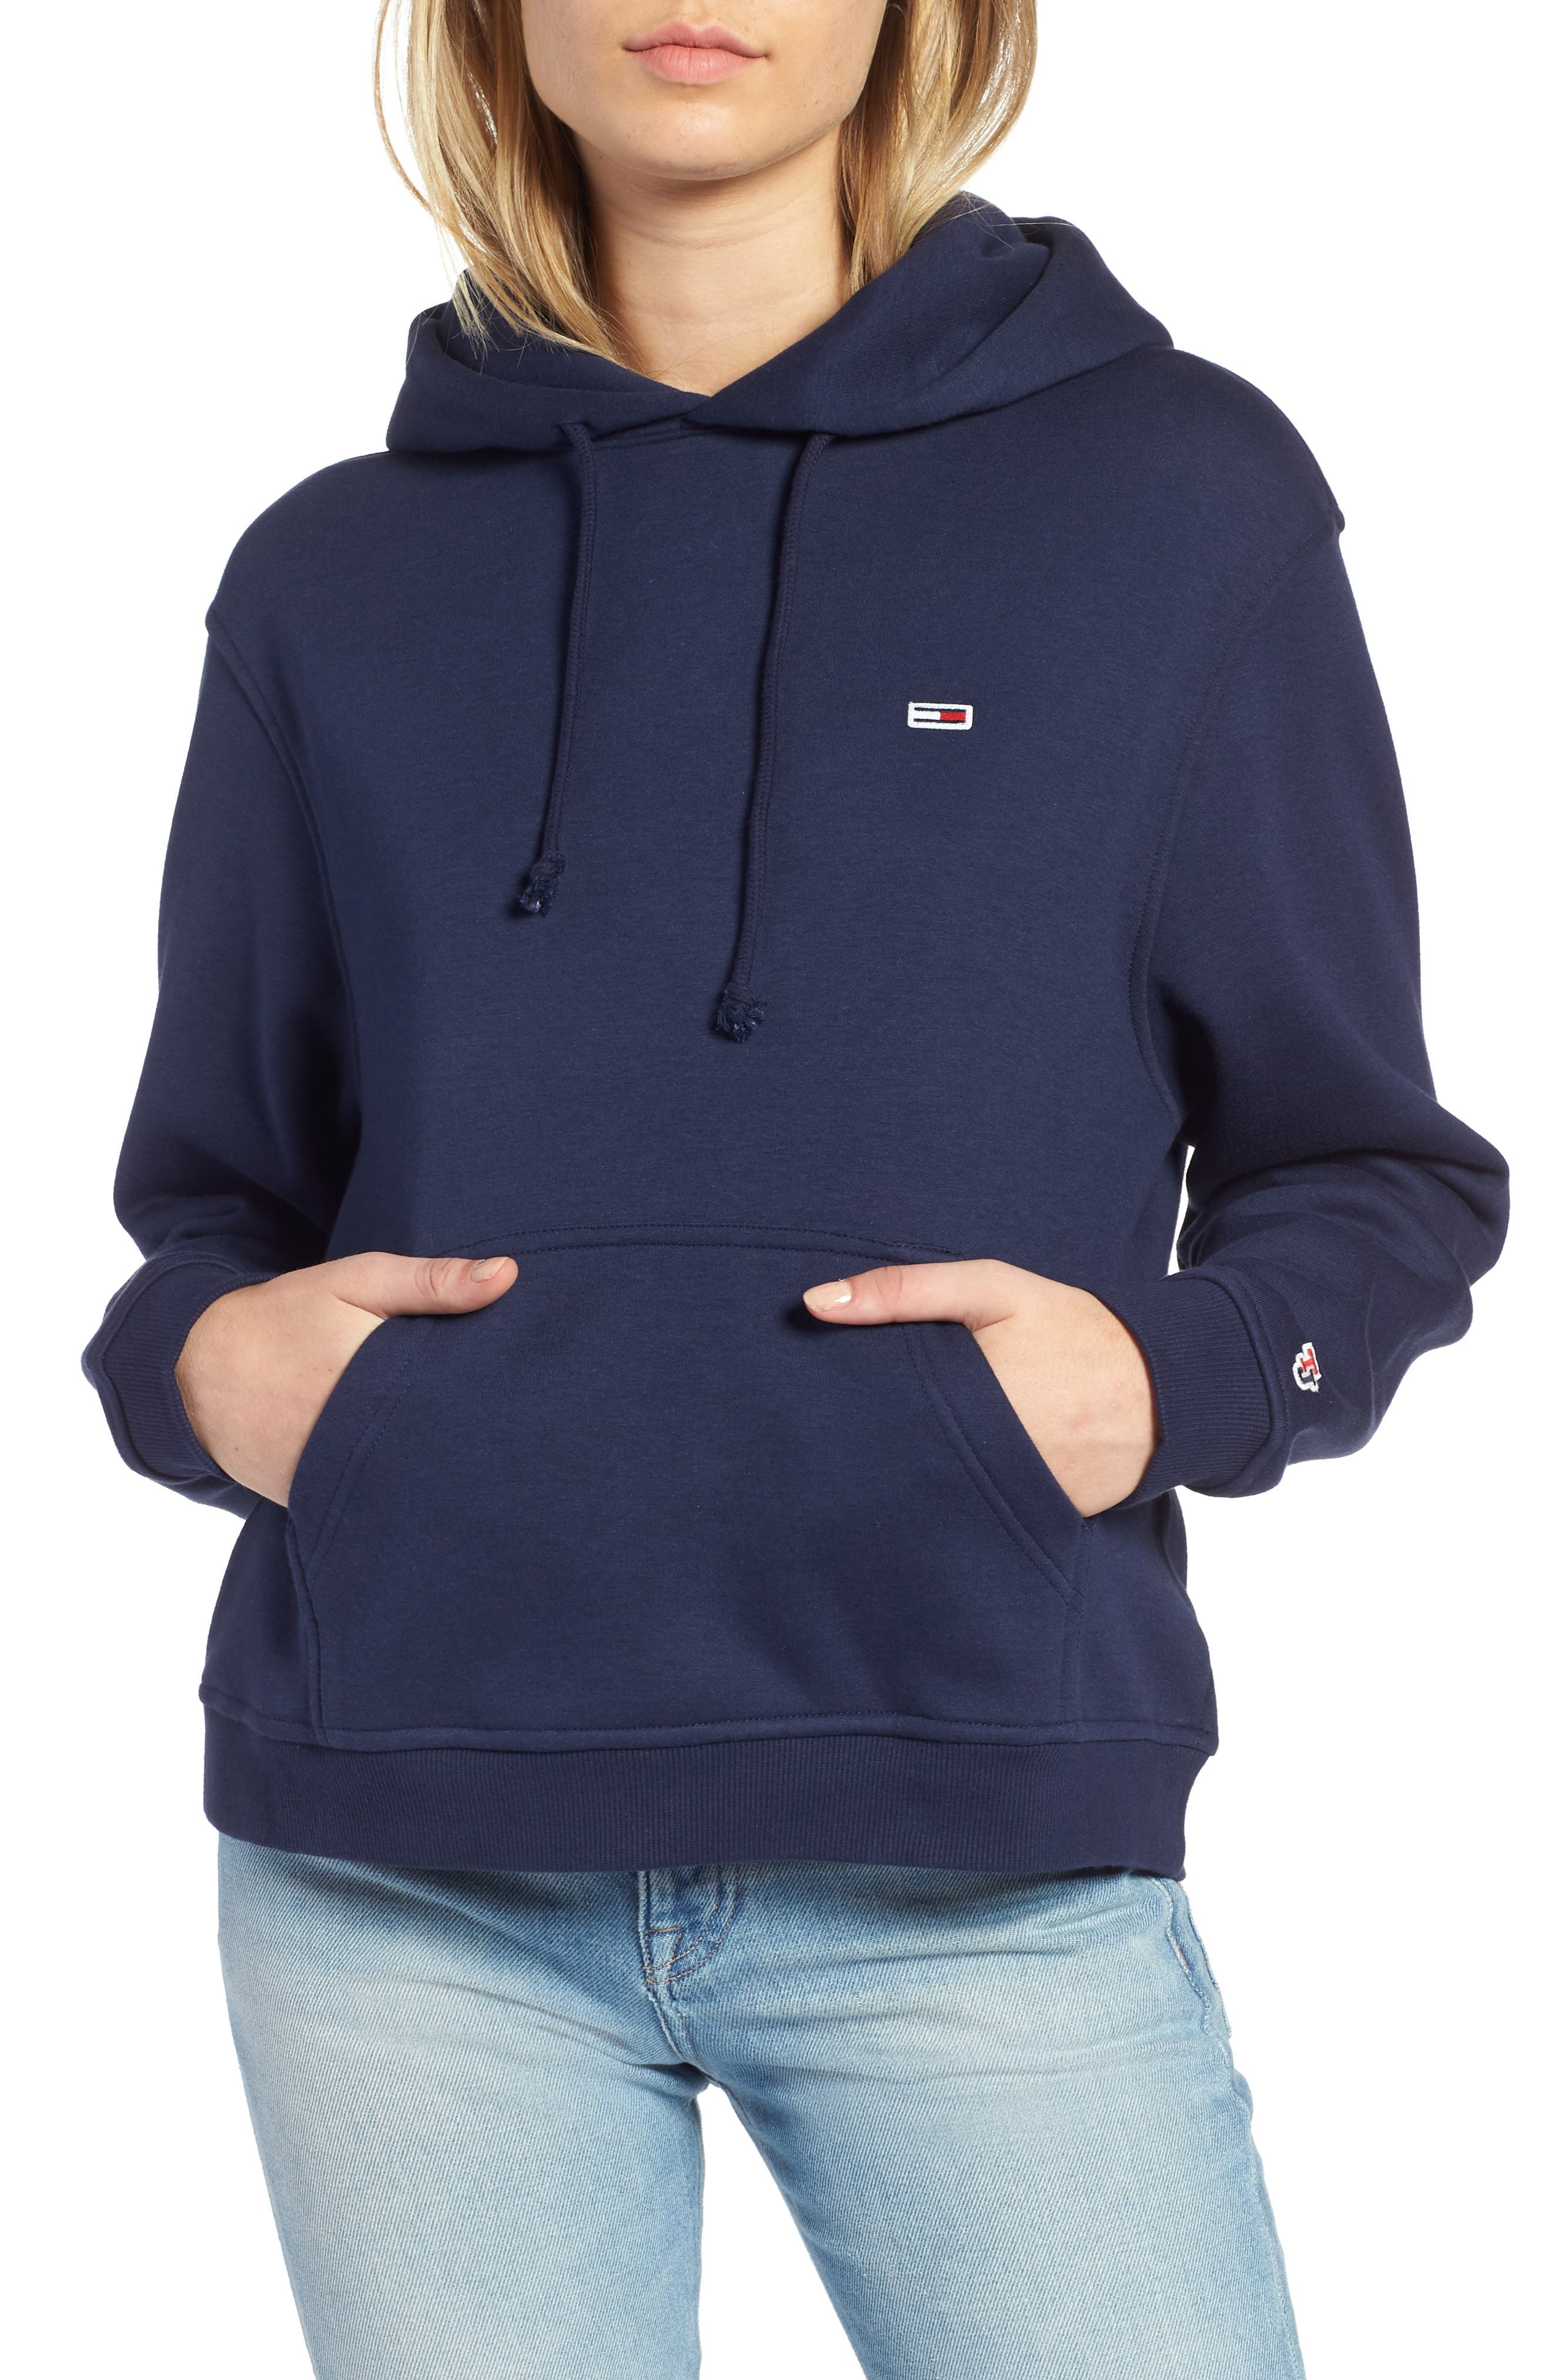 TJW Tommy Classics Hoodie,                             Main thumbnail 1, color,                             BLACK IRIS